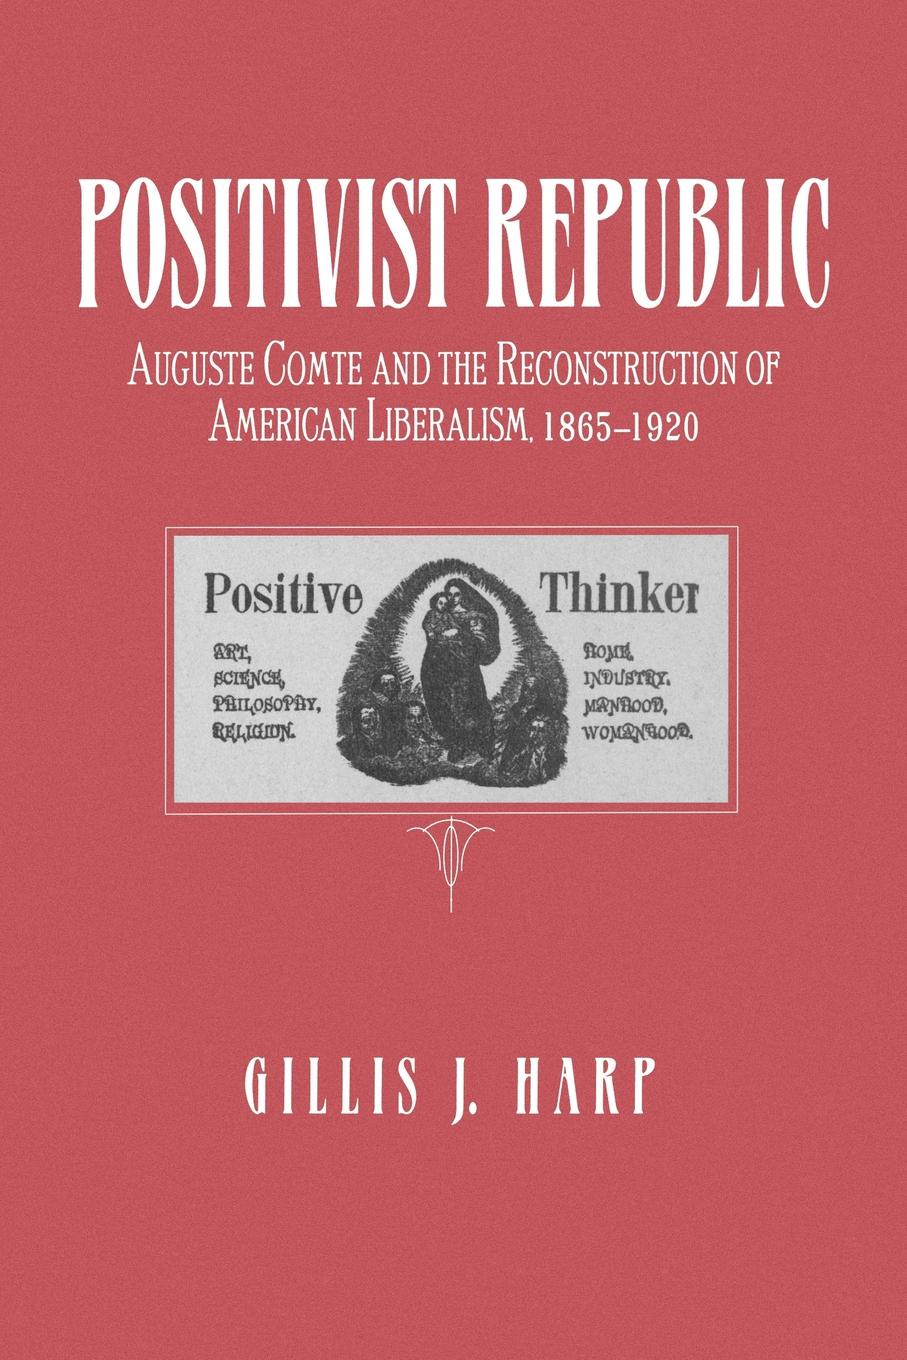 Gillis J. Harp Positivist Republic. Auguste Comte and the Reconstruction of American Liberalism, 1865-1920 коллектив авторов union harp and history of songs